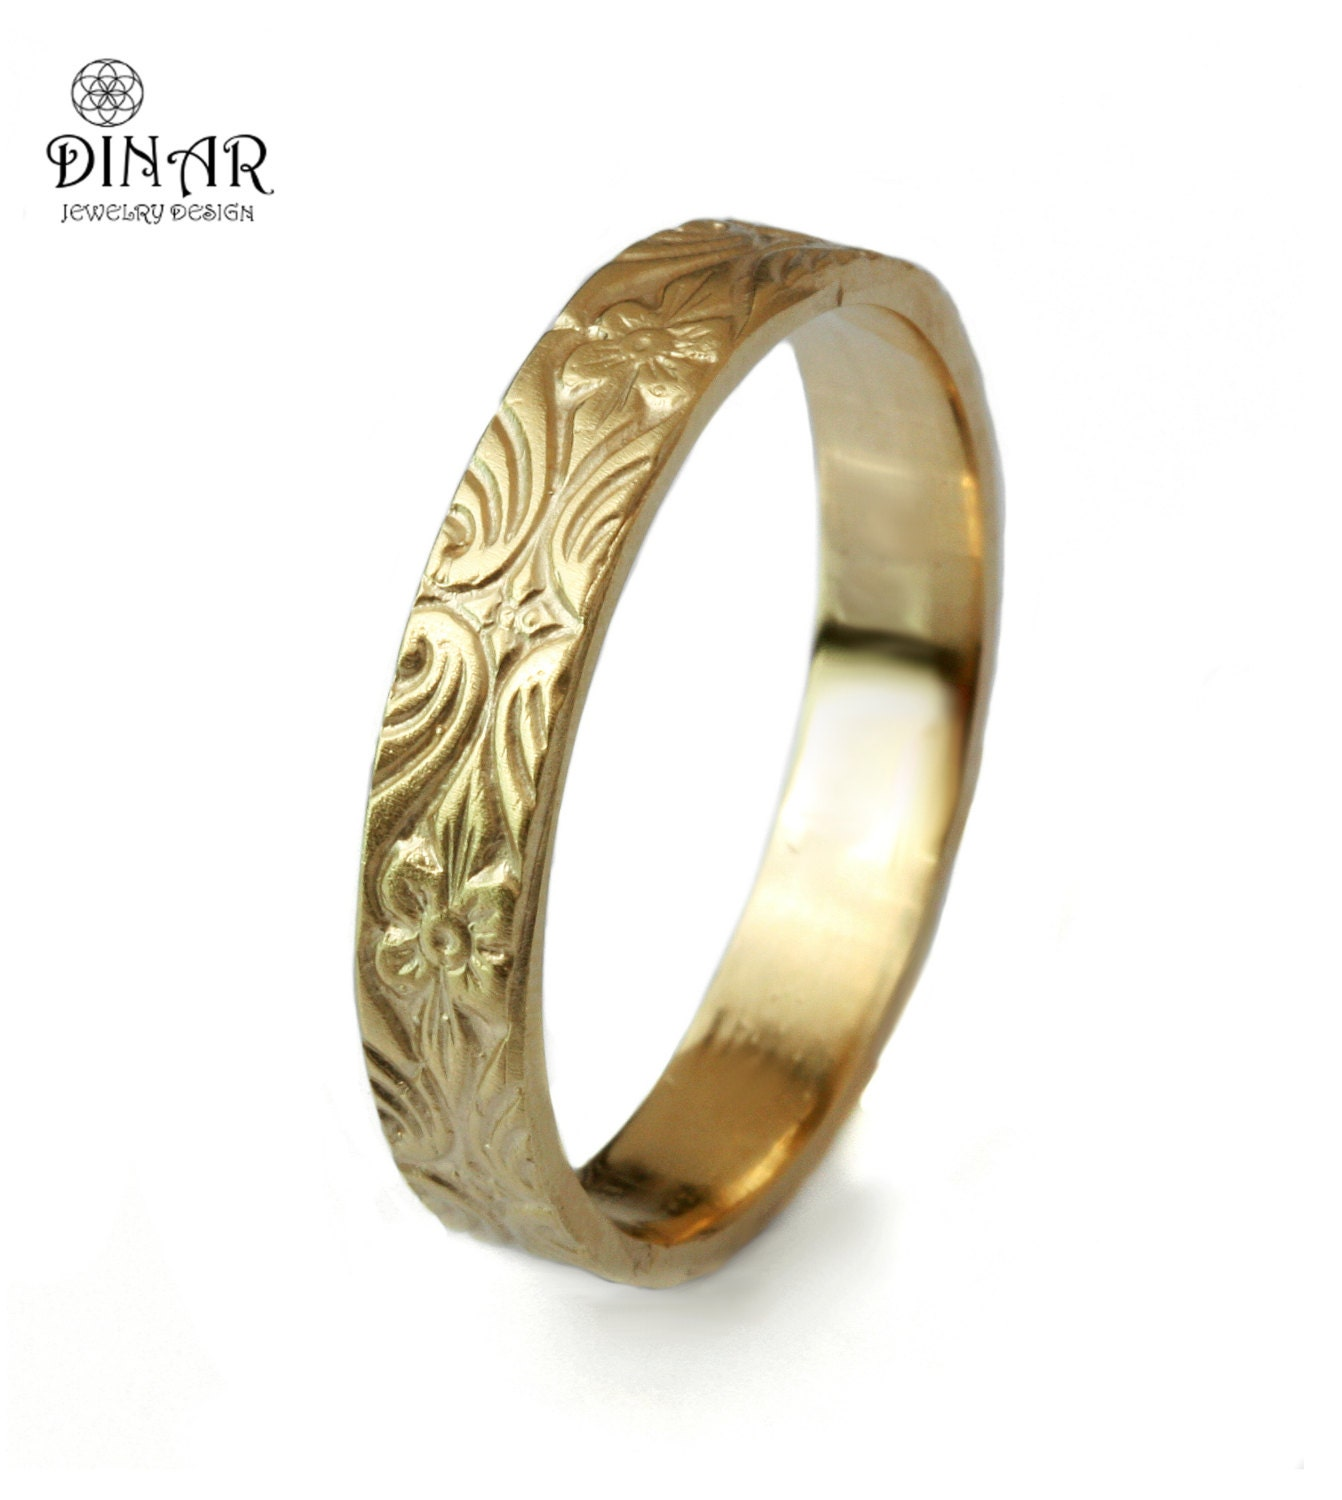 scroll wedding band engraved wedding bands 14k gold wedding band Vintage leaf and flowers Design 4mm thin ring Engraved leafs Floral pattern women s wedding band gold wedding